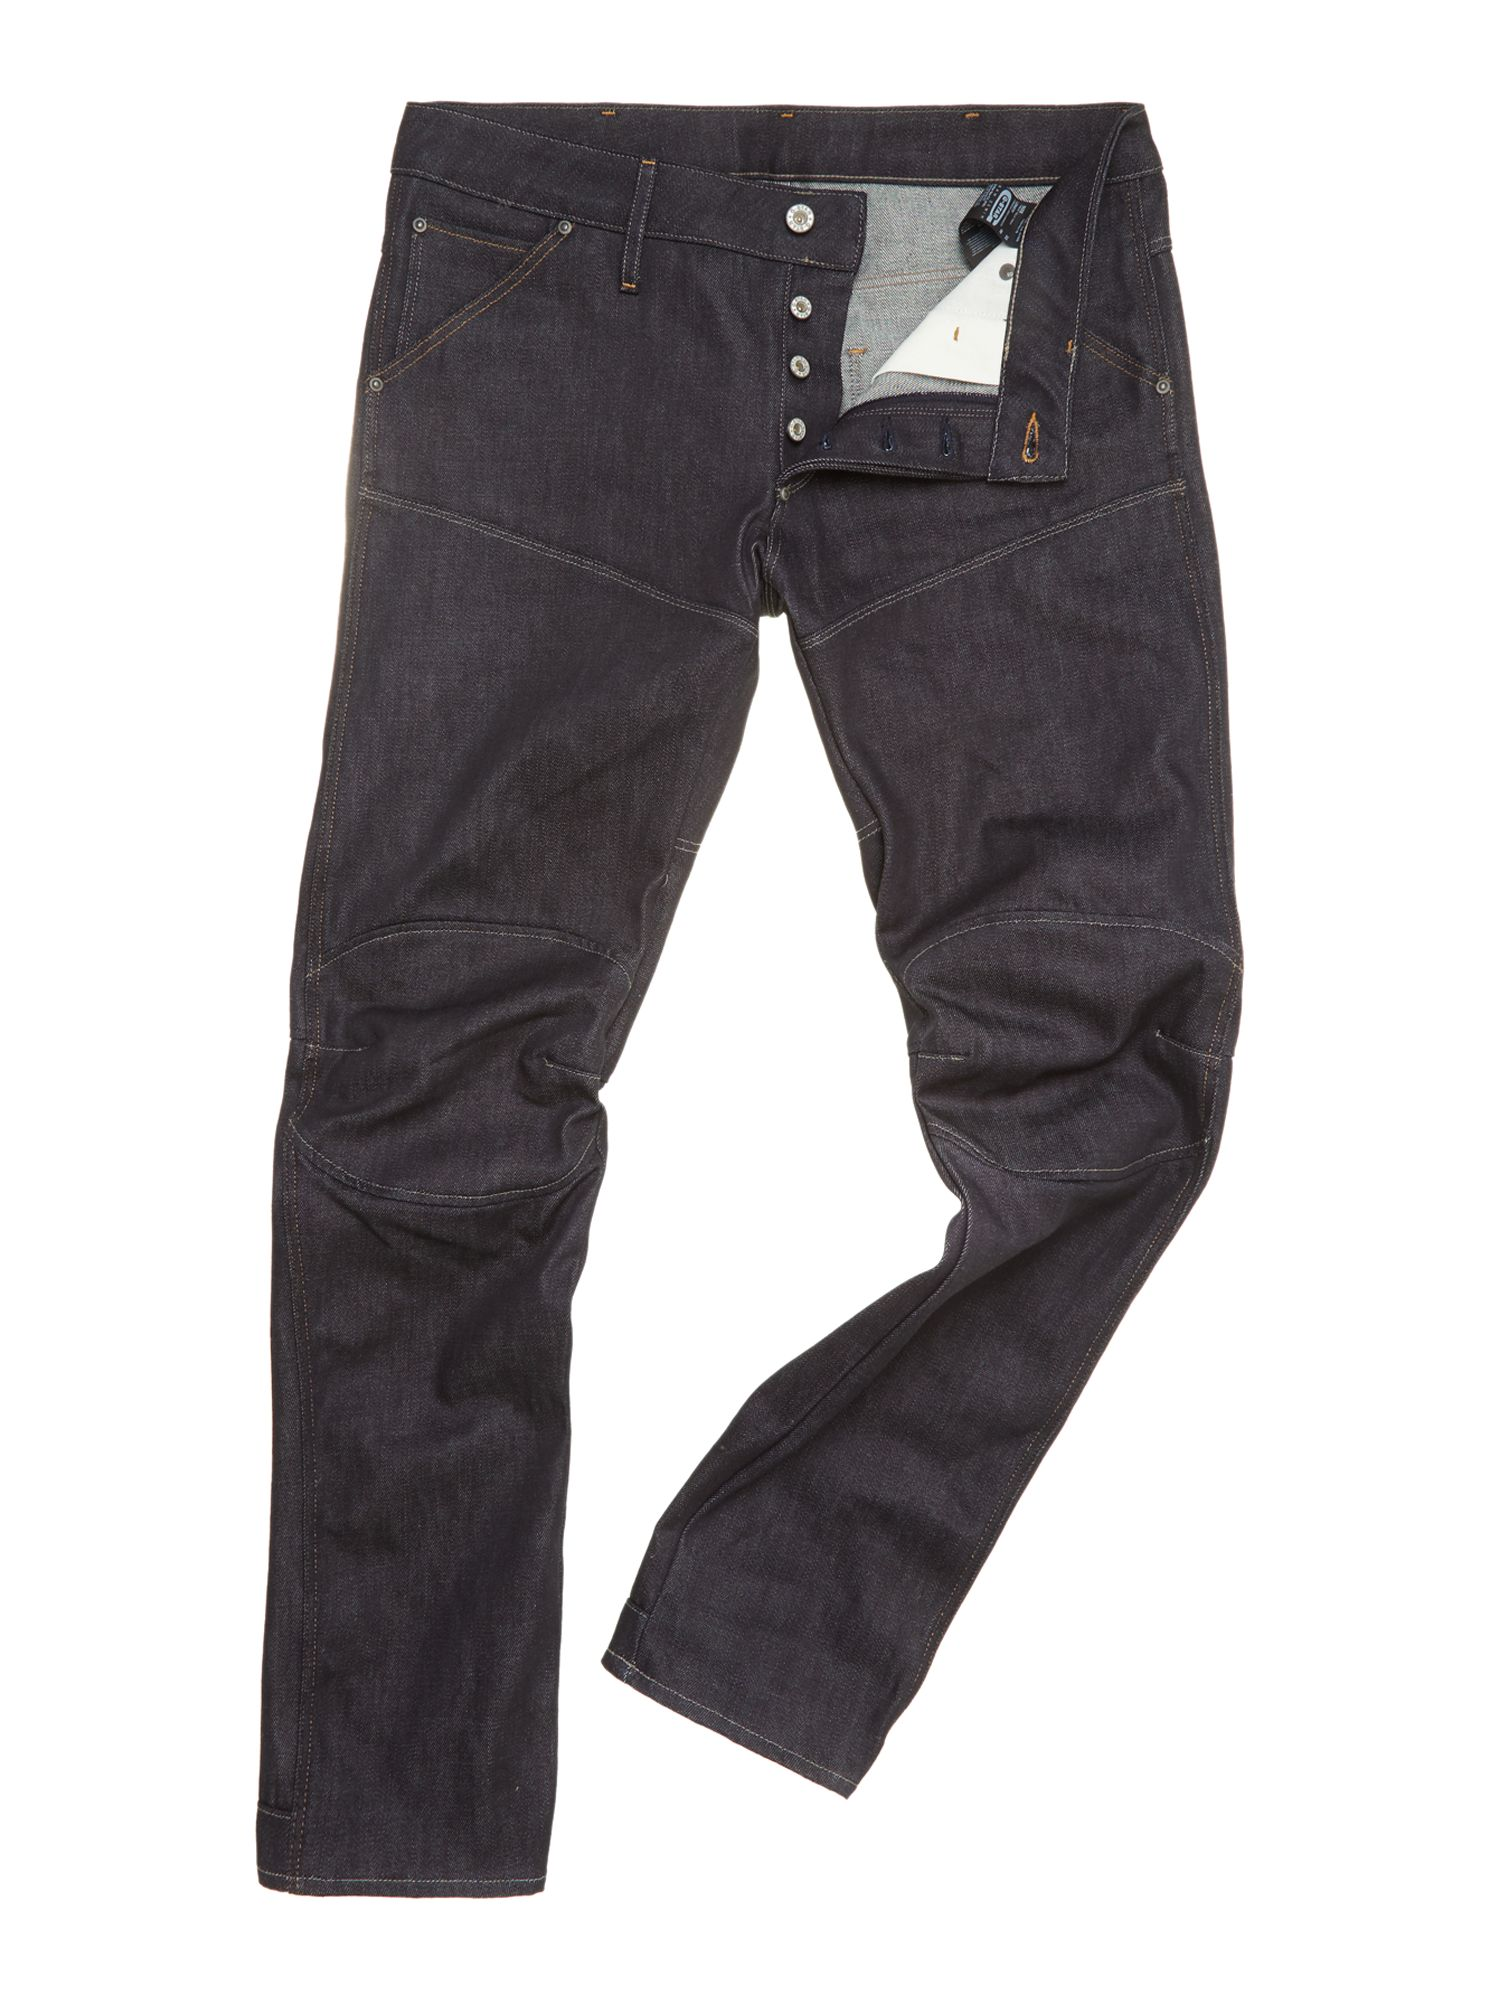 5620 low tapered leg jeans